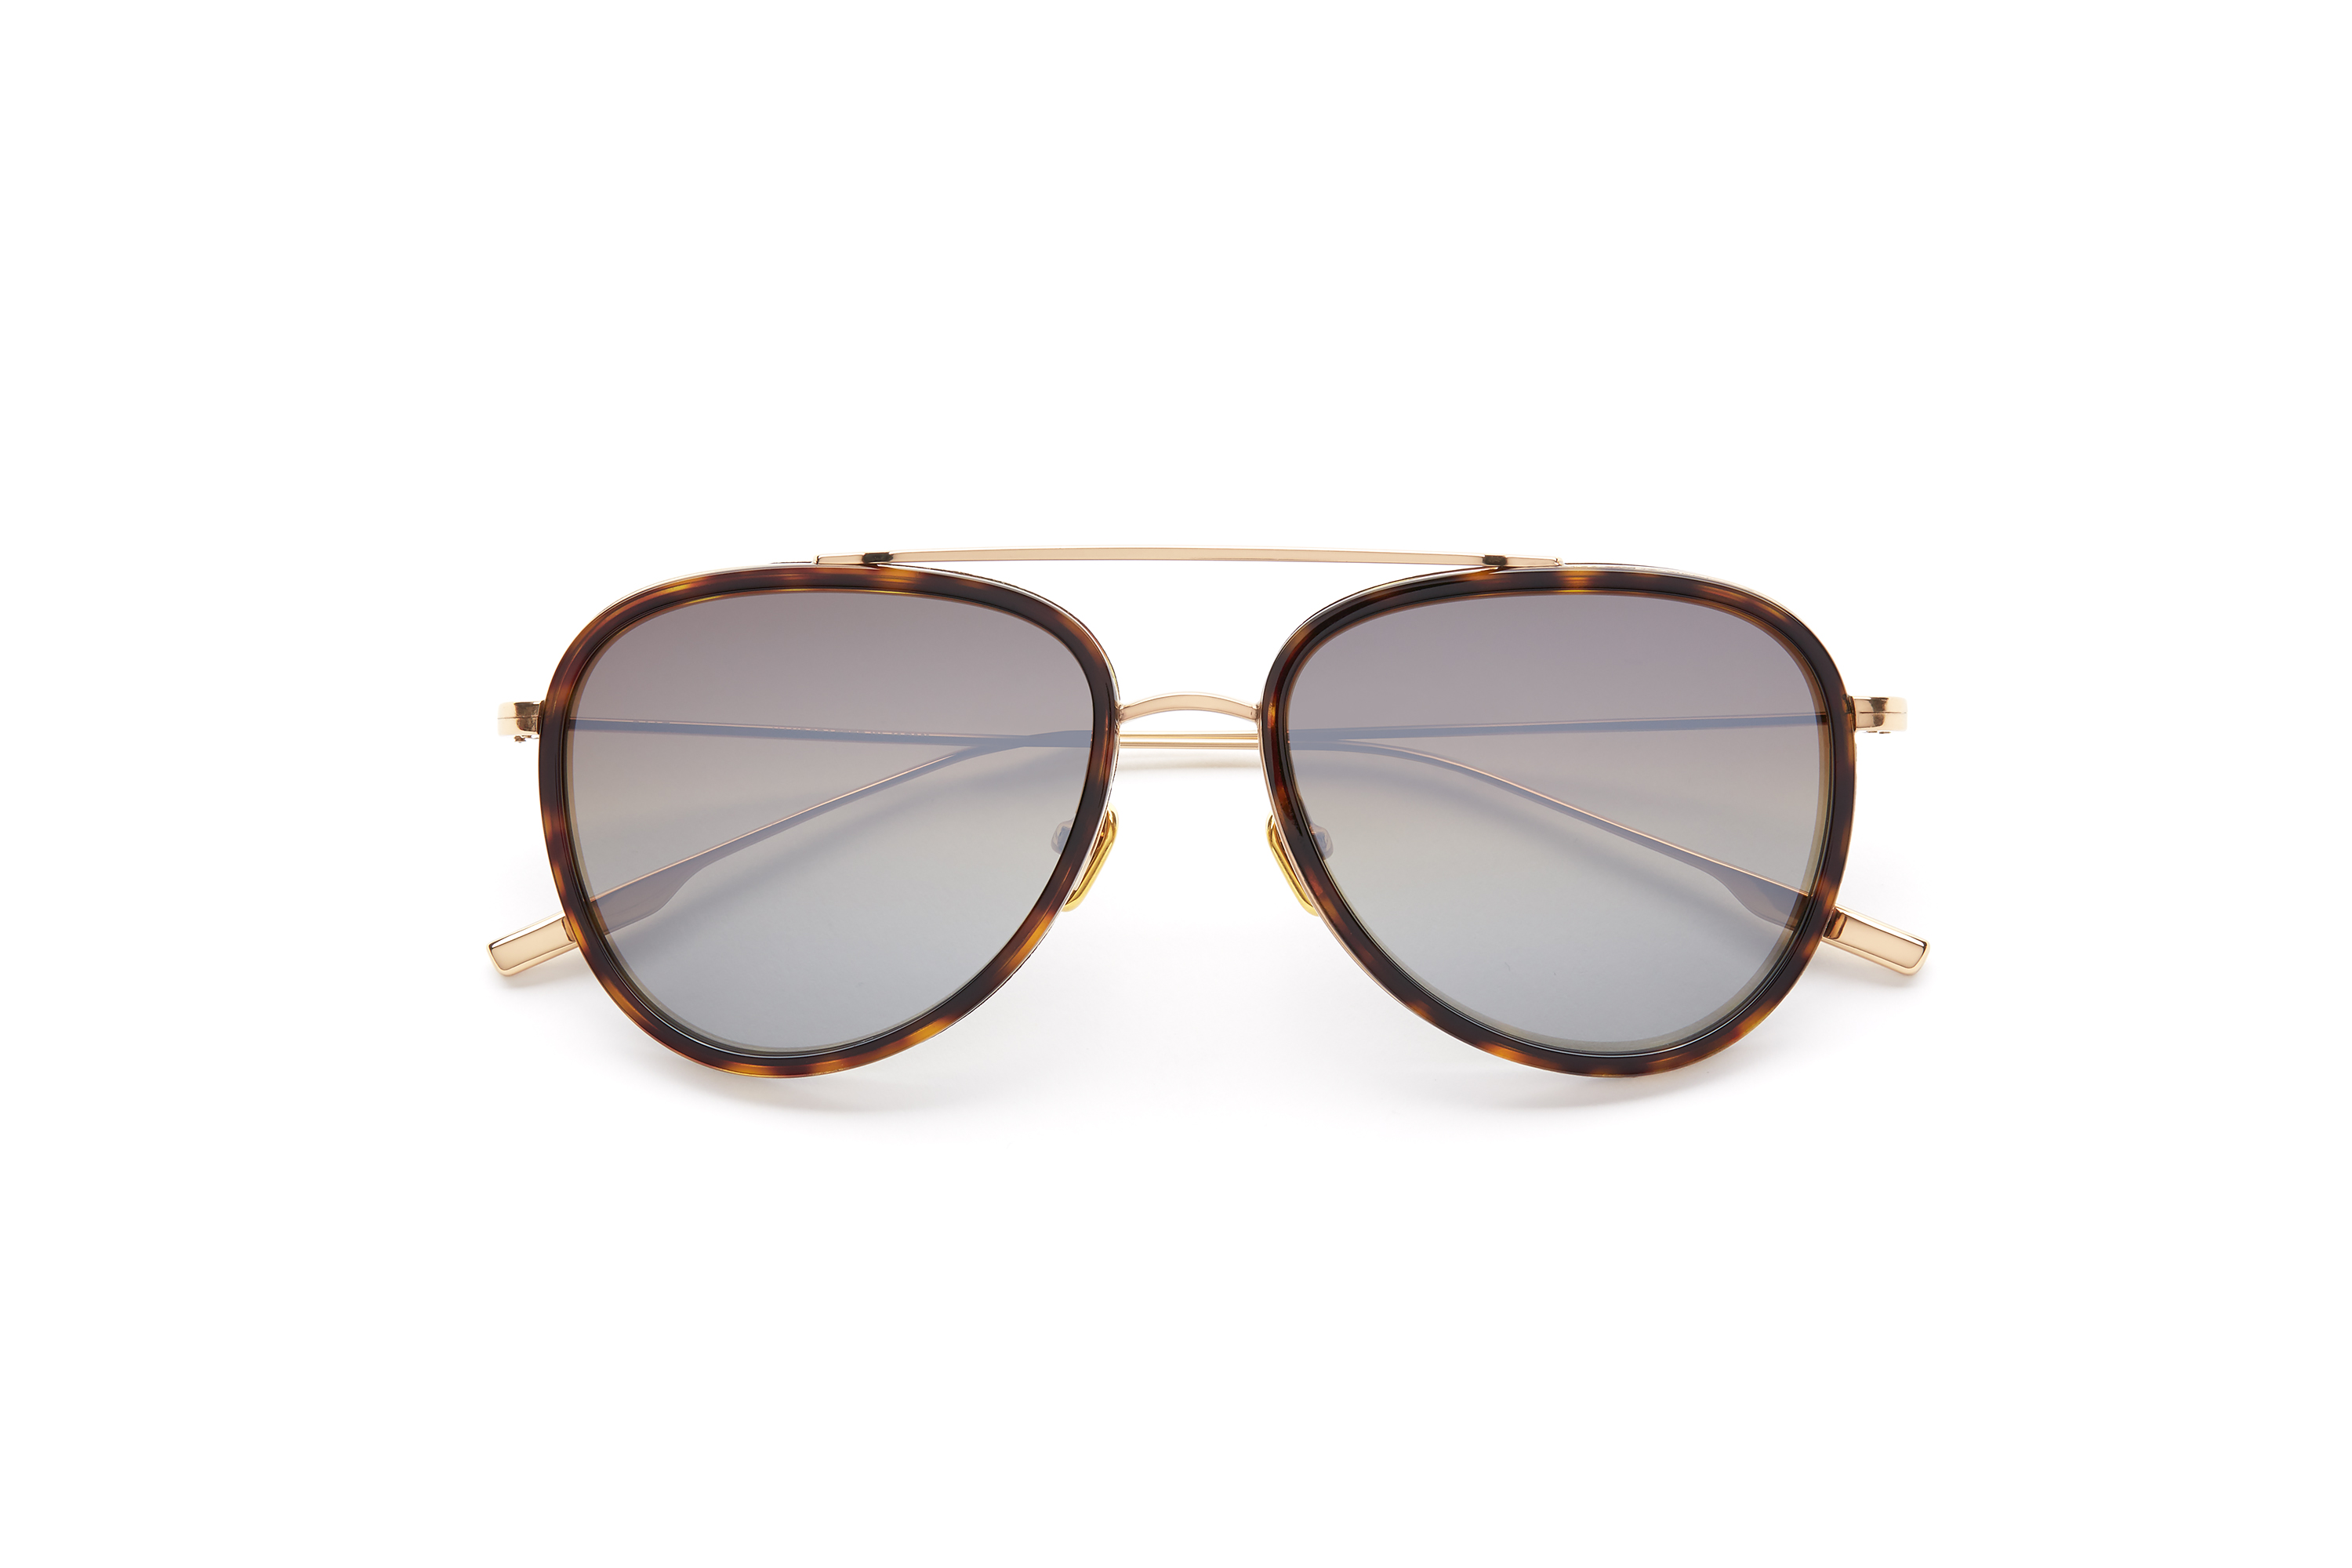 SALT. | FRAME: PARAGON in Honey Gold/Oiled Bark, lenses: CR39 Ashland Gradient Polarized